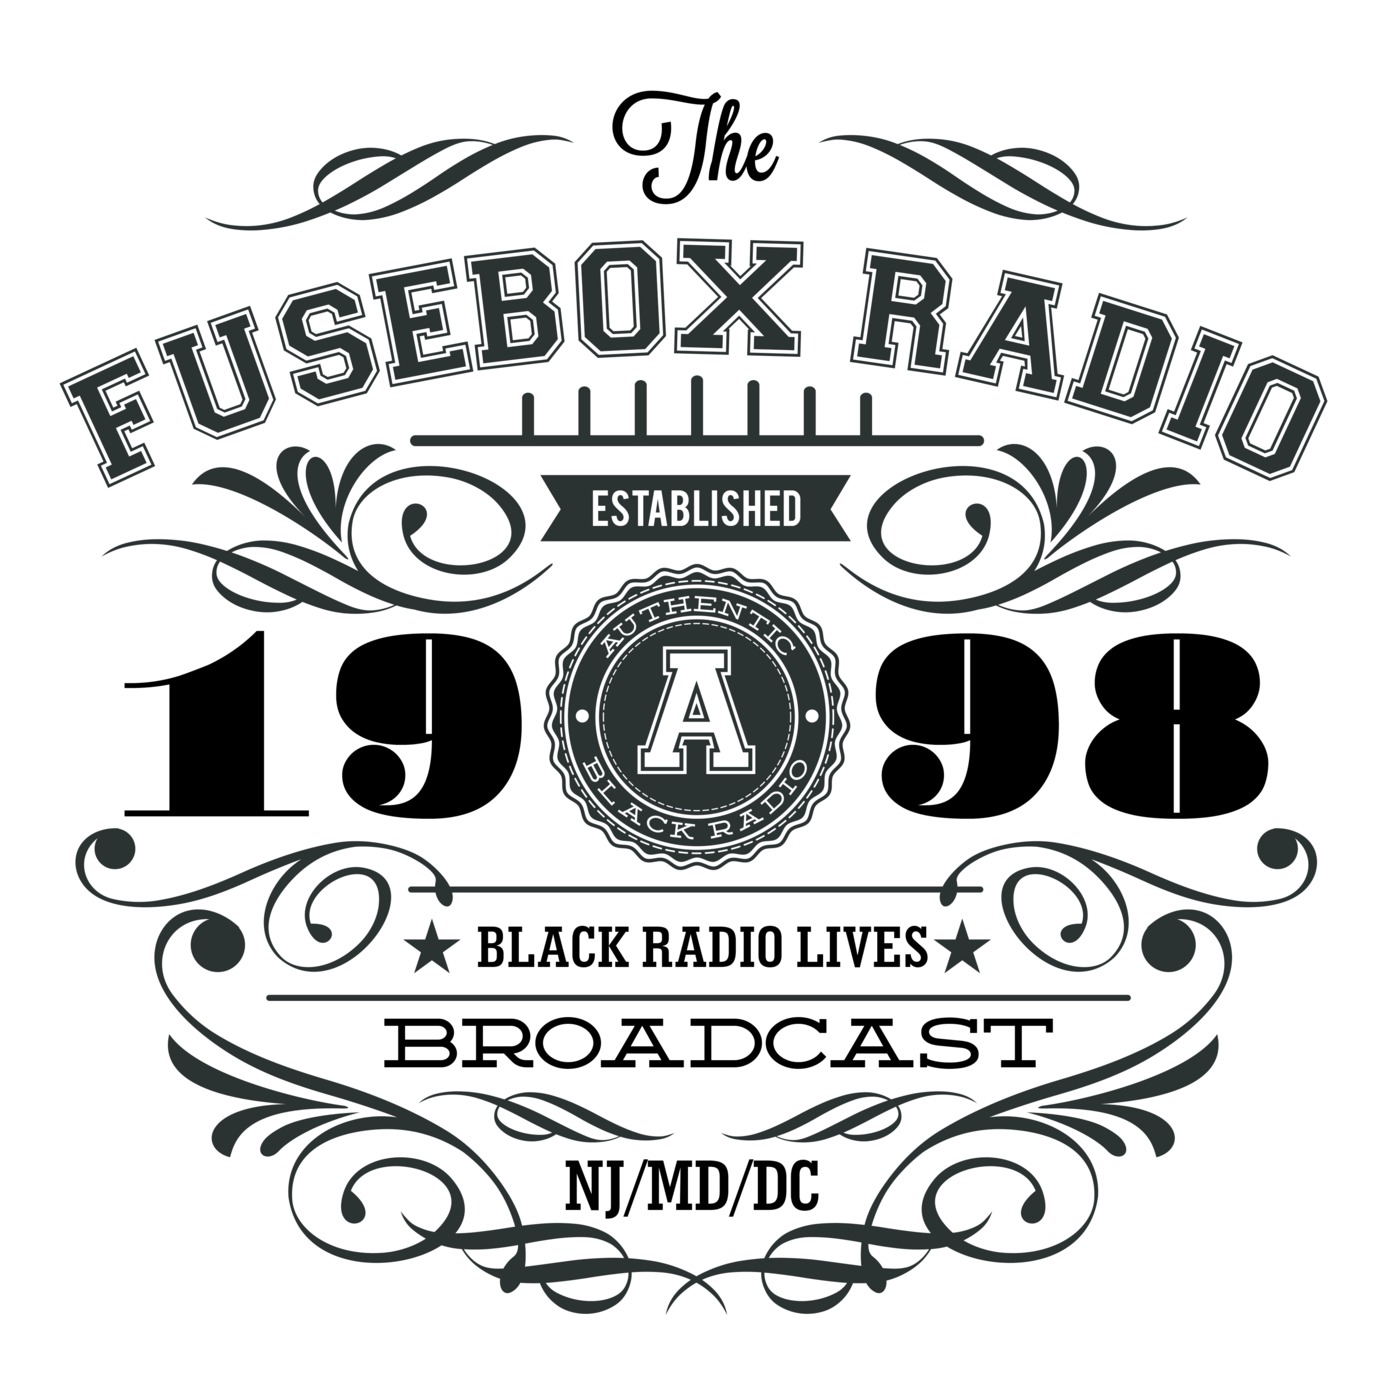 Fusebox Radio 564 Fuseboxradio Mixtape Dj Fusion 4th Of July 2011 Fuse Box Heres A Brand New Hip Hop Soul As Part Broadcast Mini Podcast Episode For Folks To Check Out This Independence Day